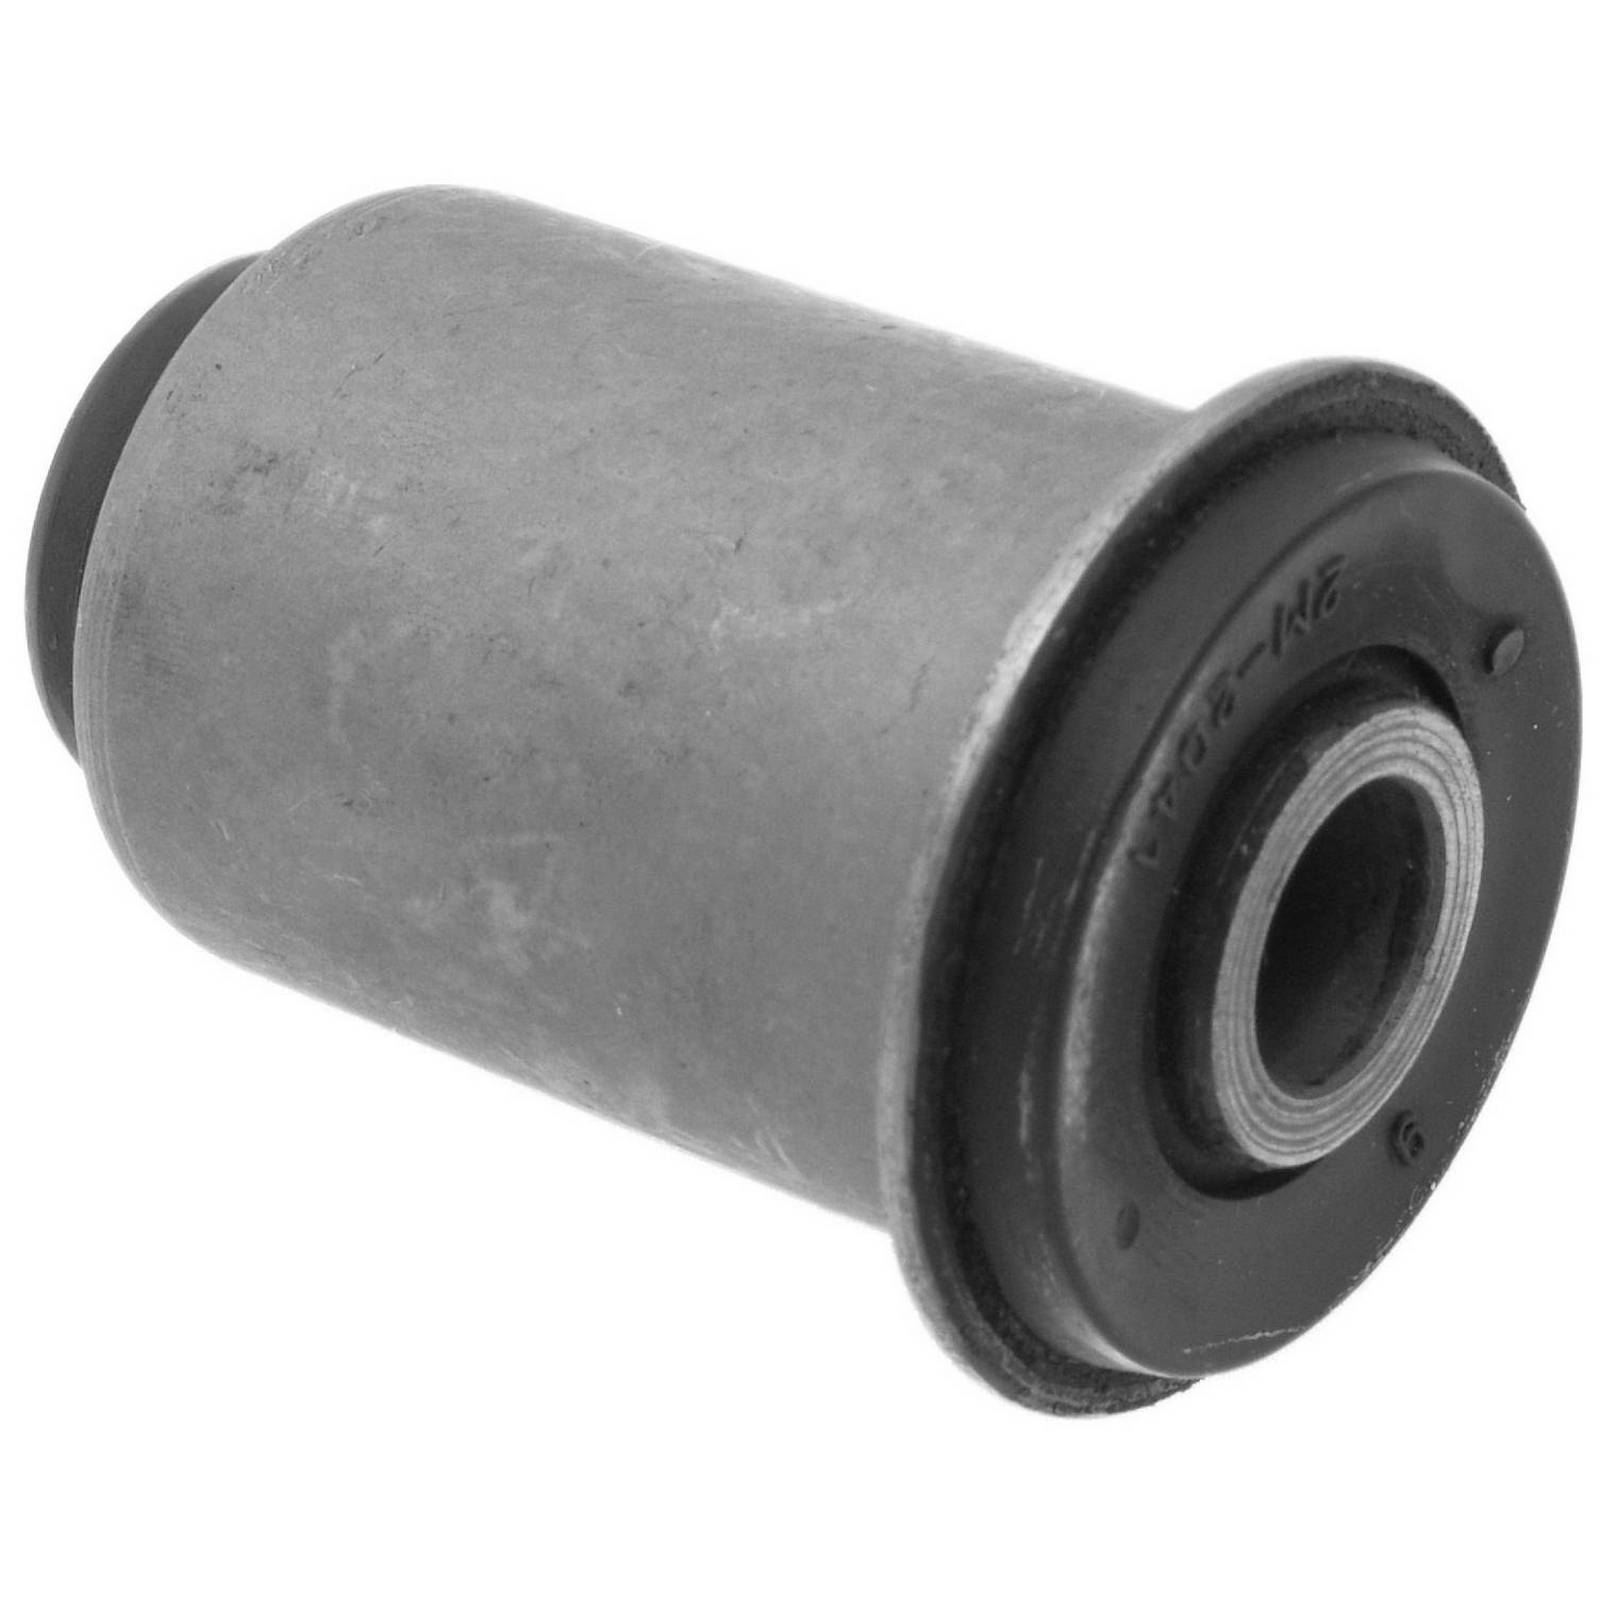 Front Arm Bushing Mitsubishi Rubber Parts Febest Mab 3f 1992 Expo Lrv